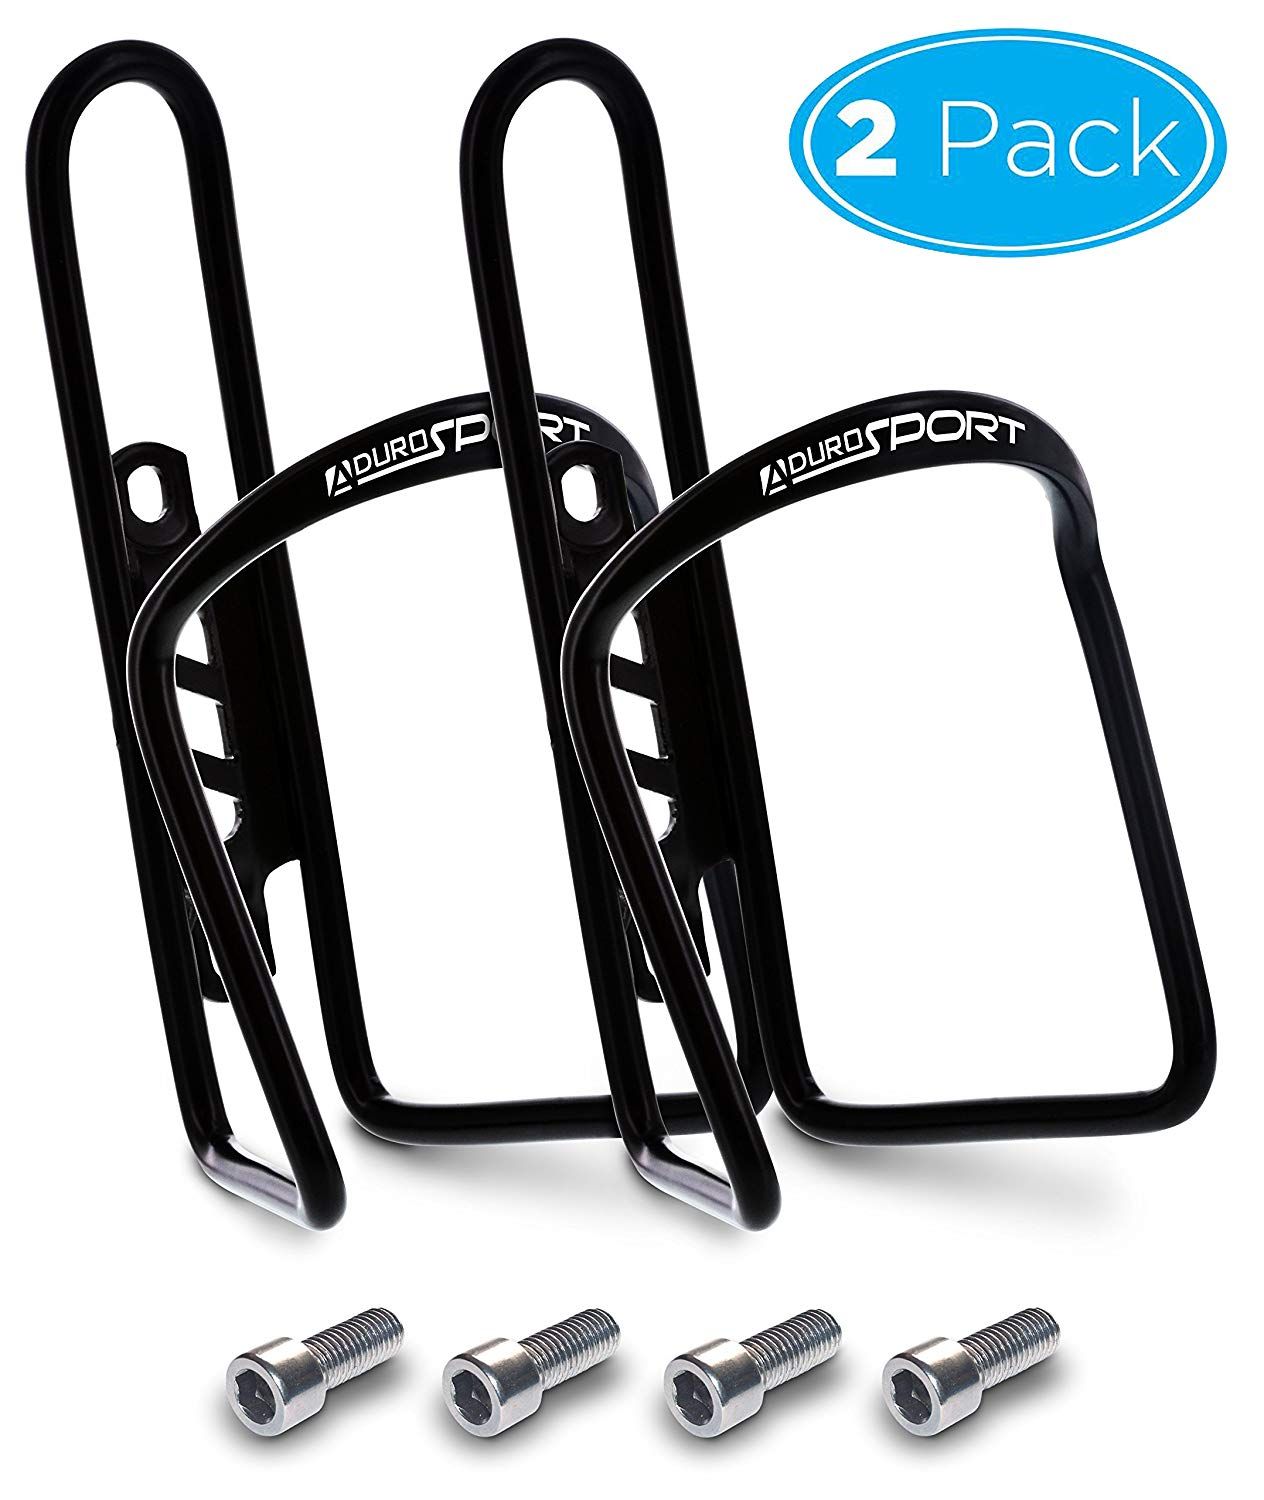 Aduro Bike Water Bottle Holder Aluminum Cage